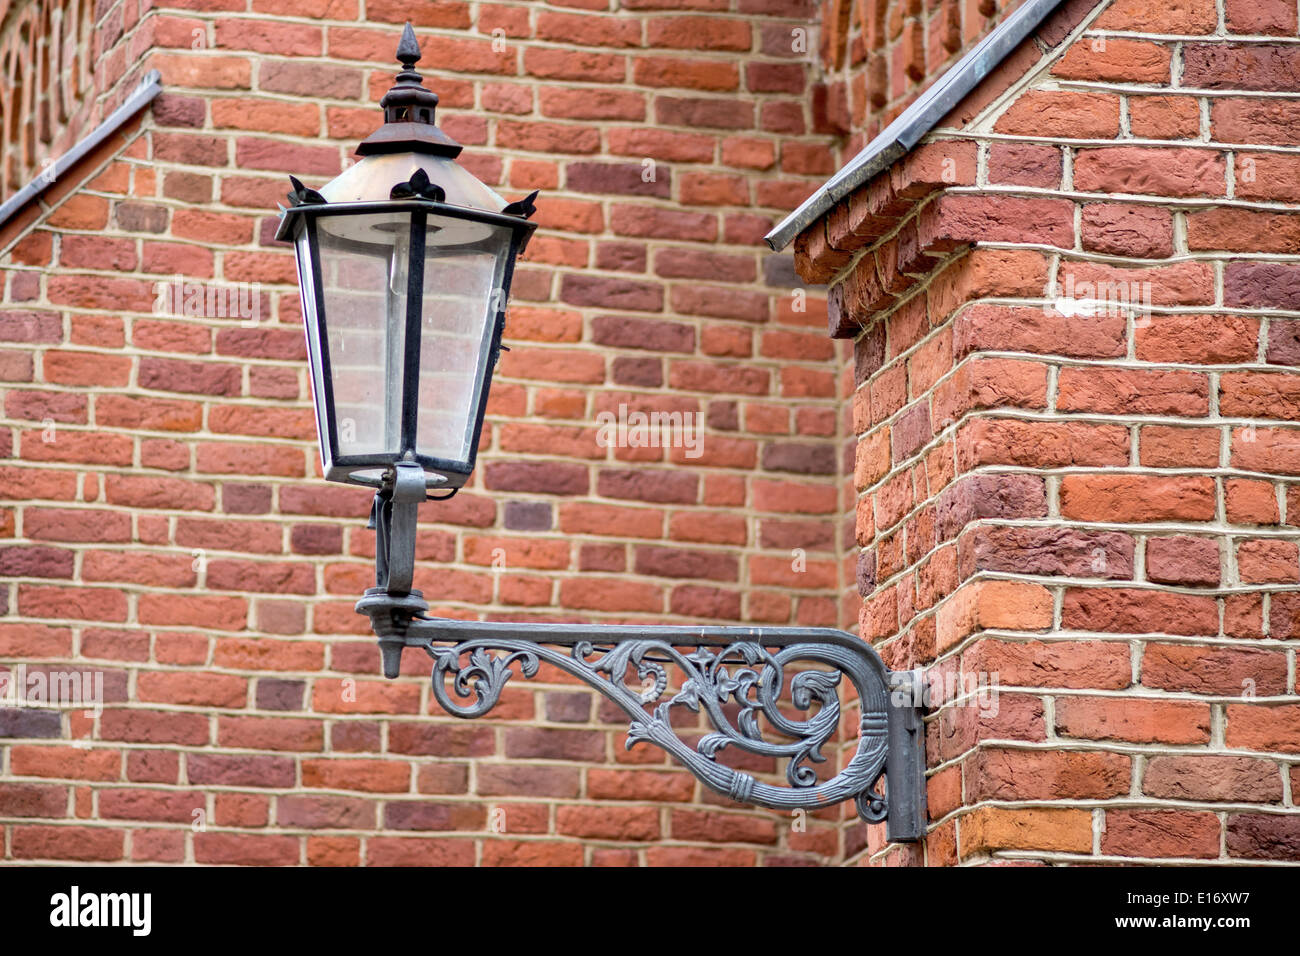 Old street lamp - Stock Image